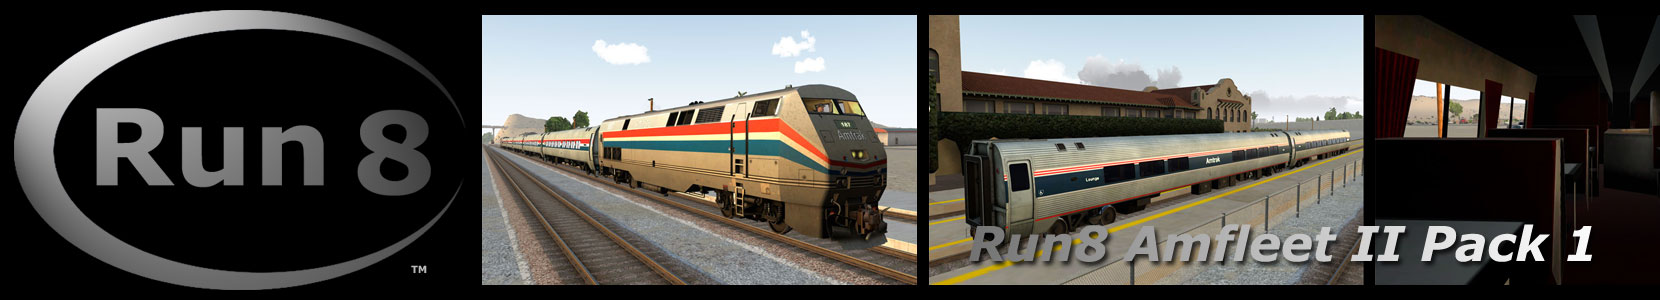 Run8 Train Simulator Amfleet II Pack 1